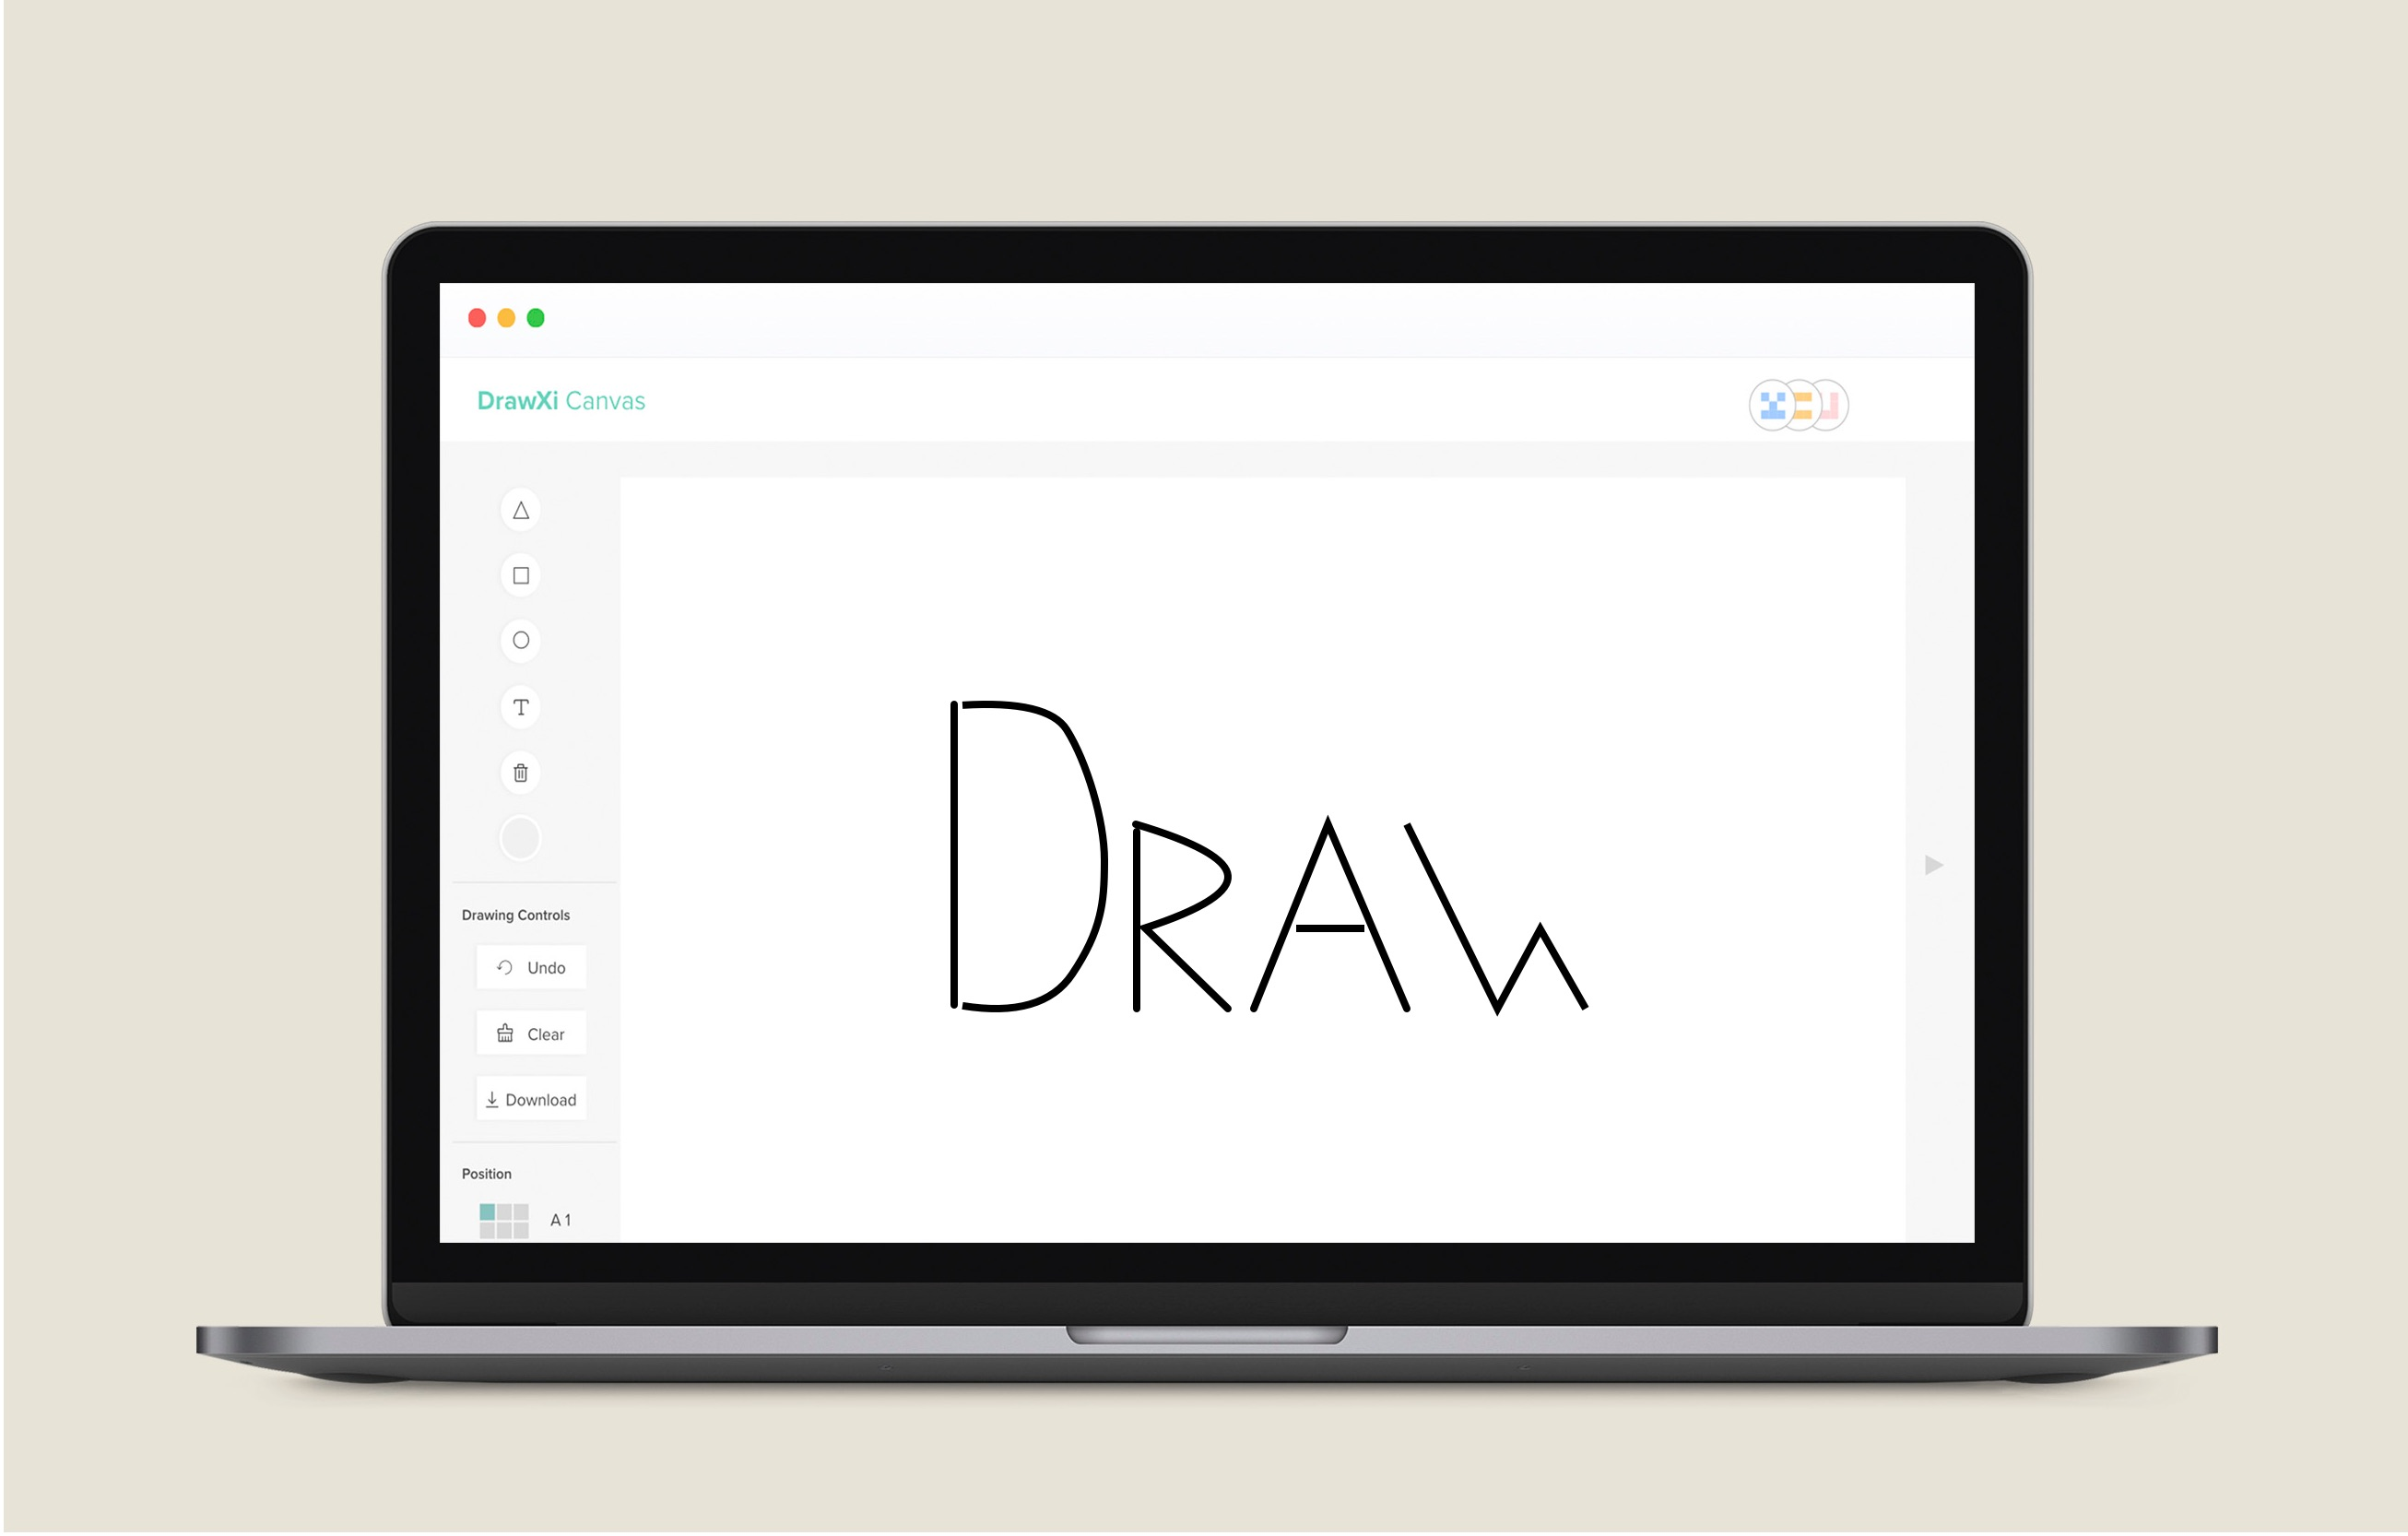 Image showing Freeform drawing being represented on Drawxi Canvas.